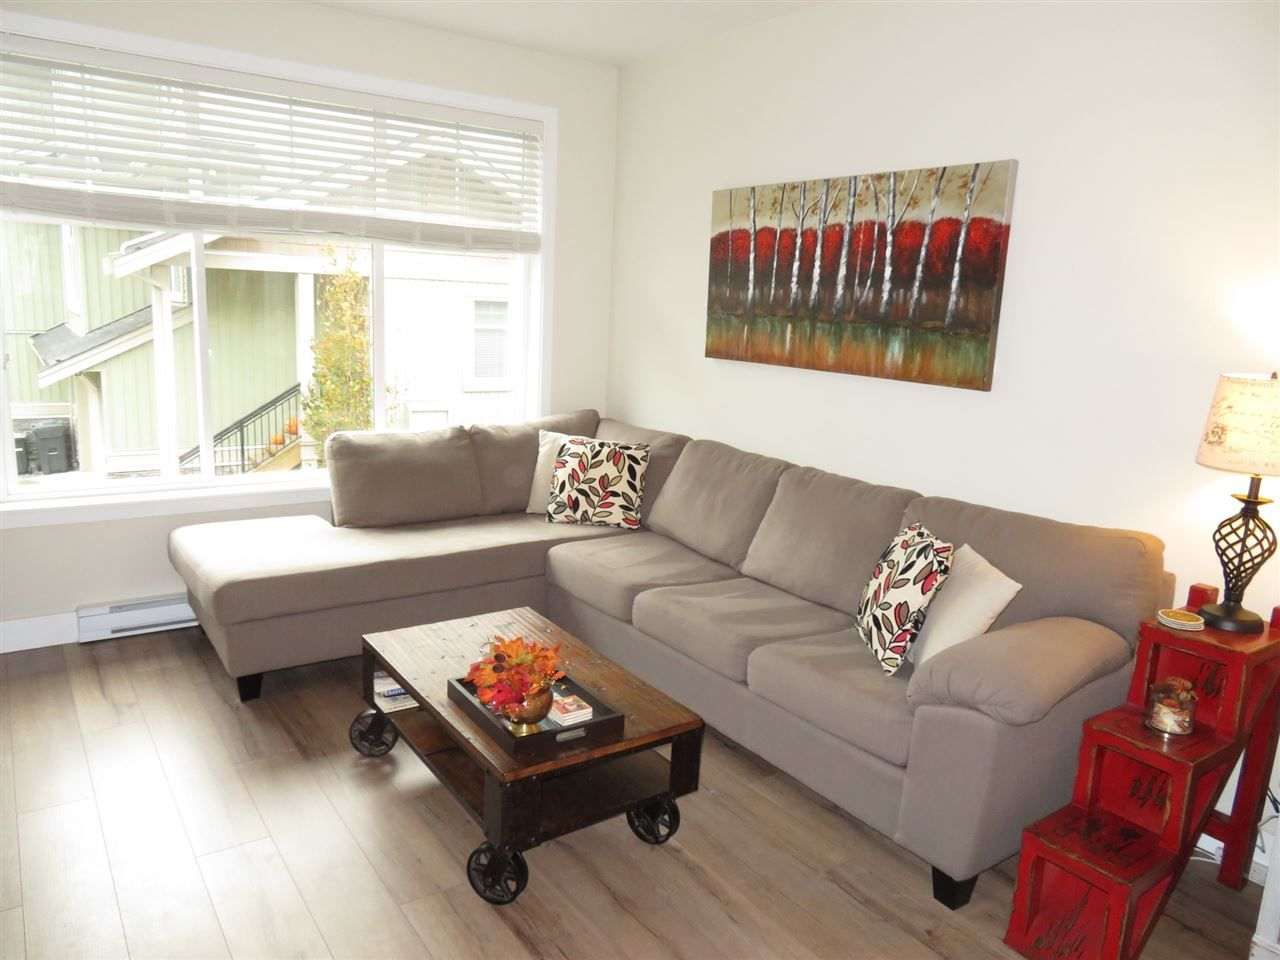 "Photo 7: Photos: 6 20967 76 Avenue in Langley: Willoughby Heights Townhouse for sale in ""Natures Walk"" : MLS® # R2220608"